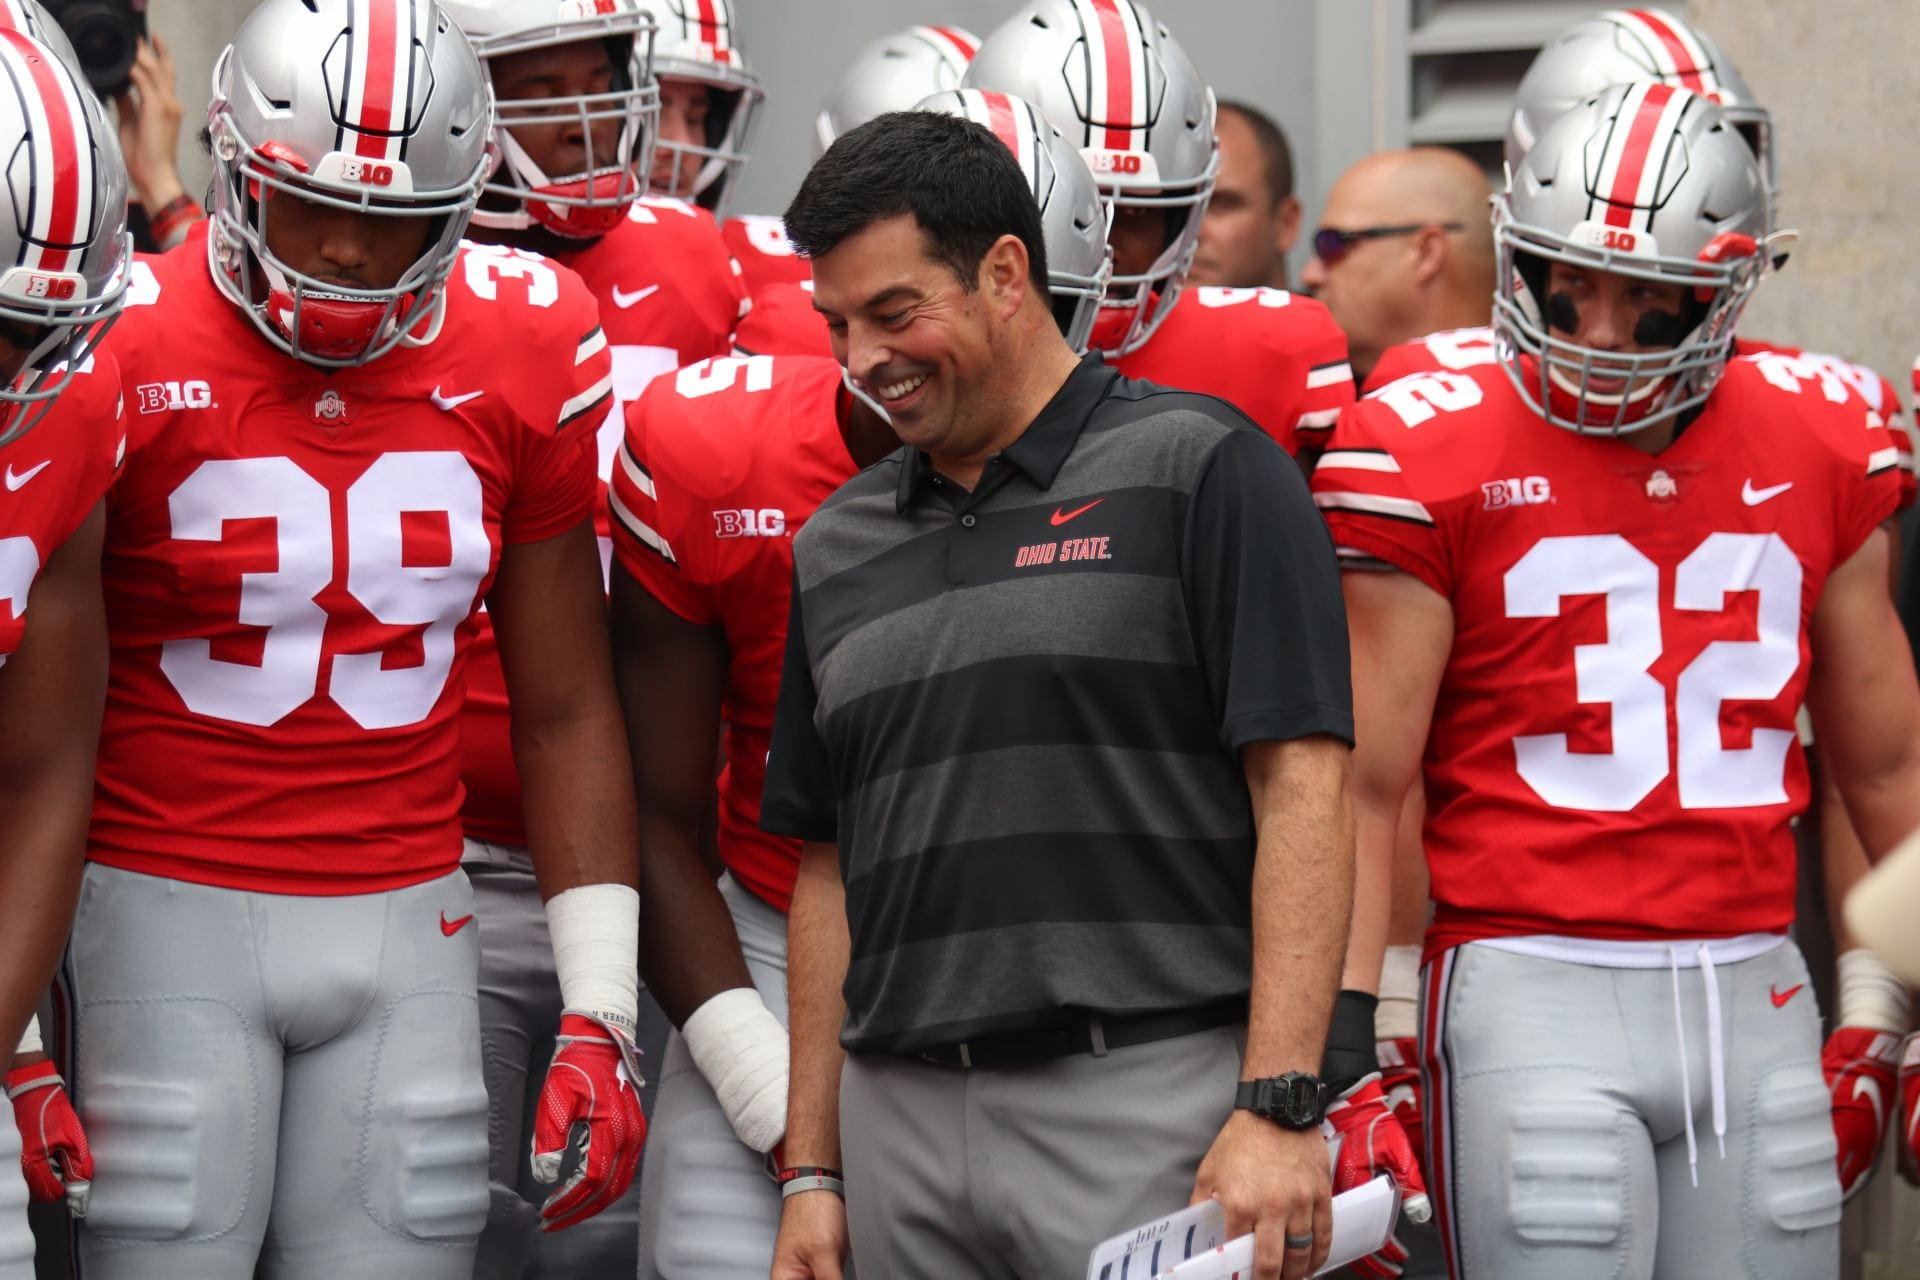 Football: Ryan Day goes back to assistant role following time in the spotlight